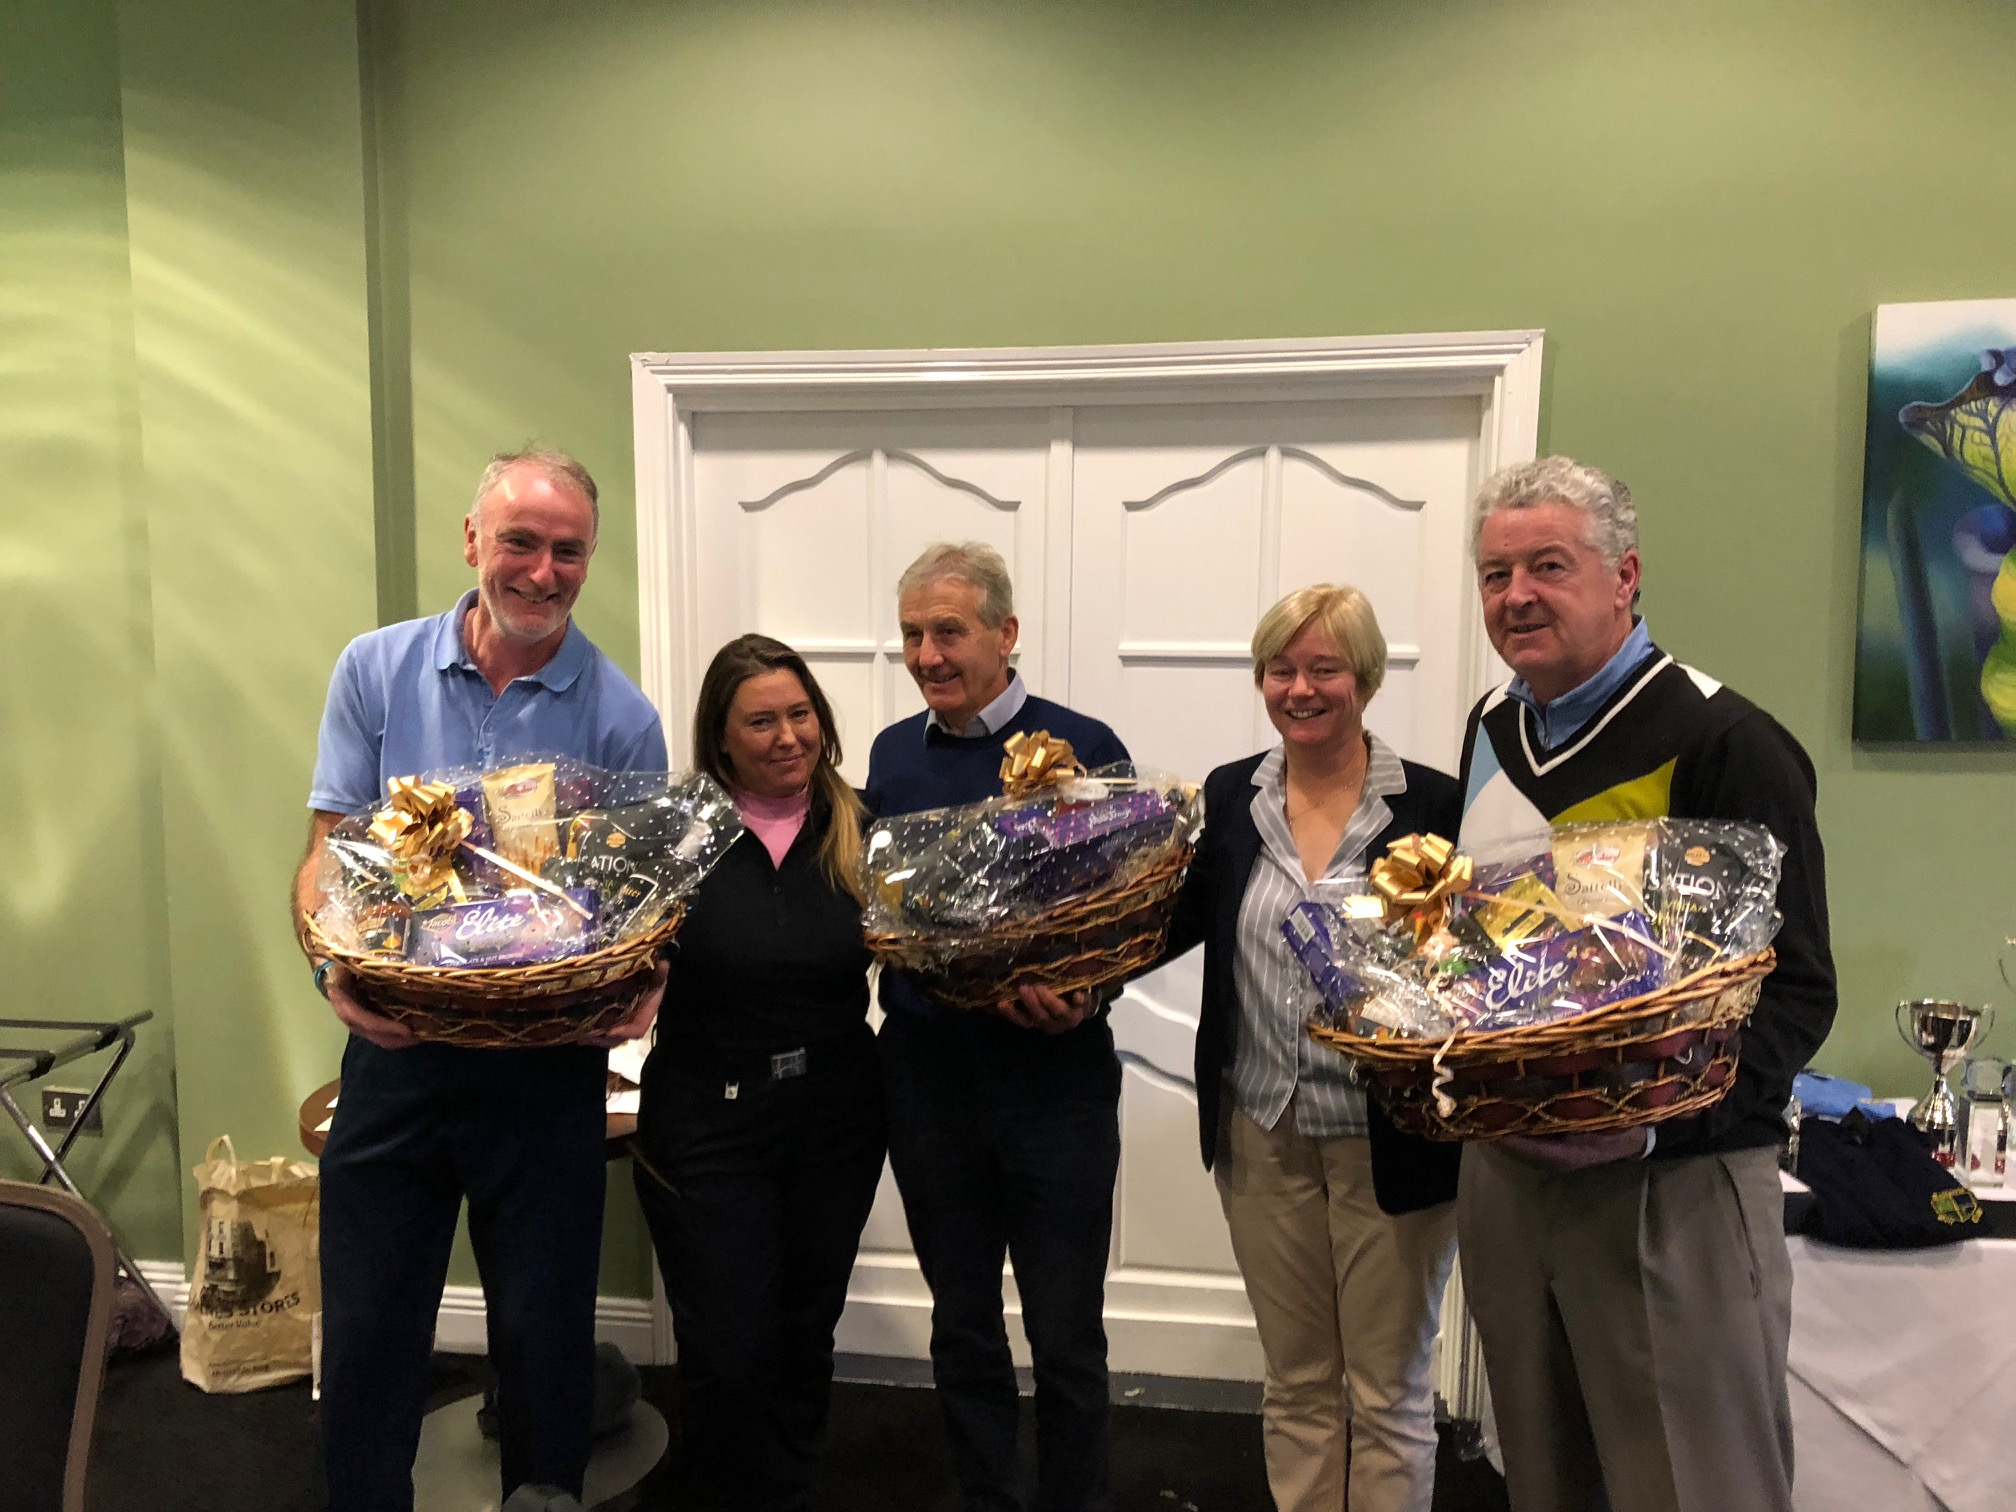 1st Place: 56.1 Liam O'Loughlin, Valerie Clifford, Pat Edgeworth & Tom McIntyre presented by Lady Capt Mags Ryan.